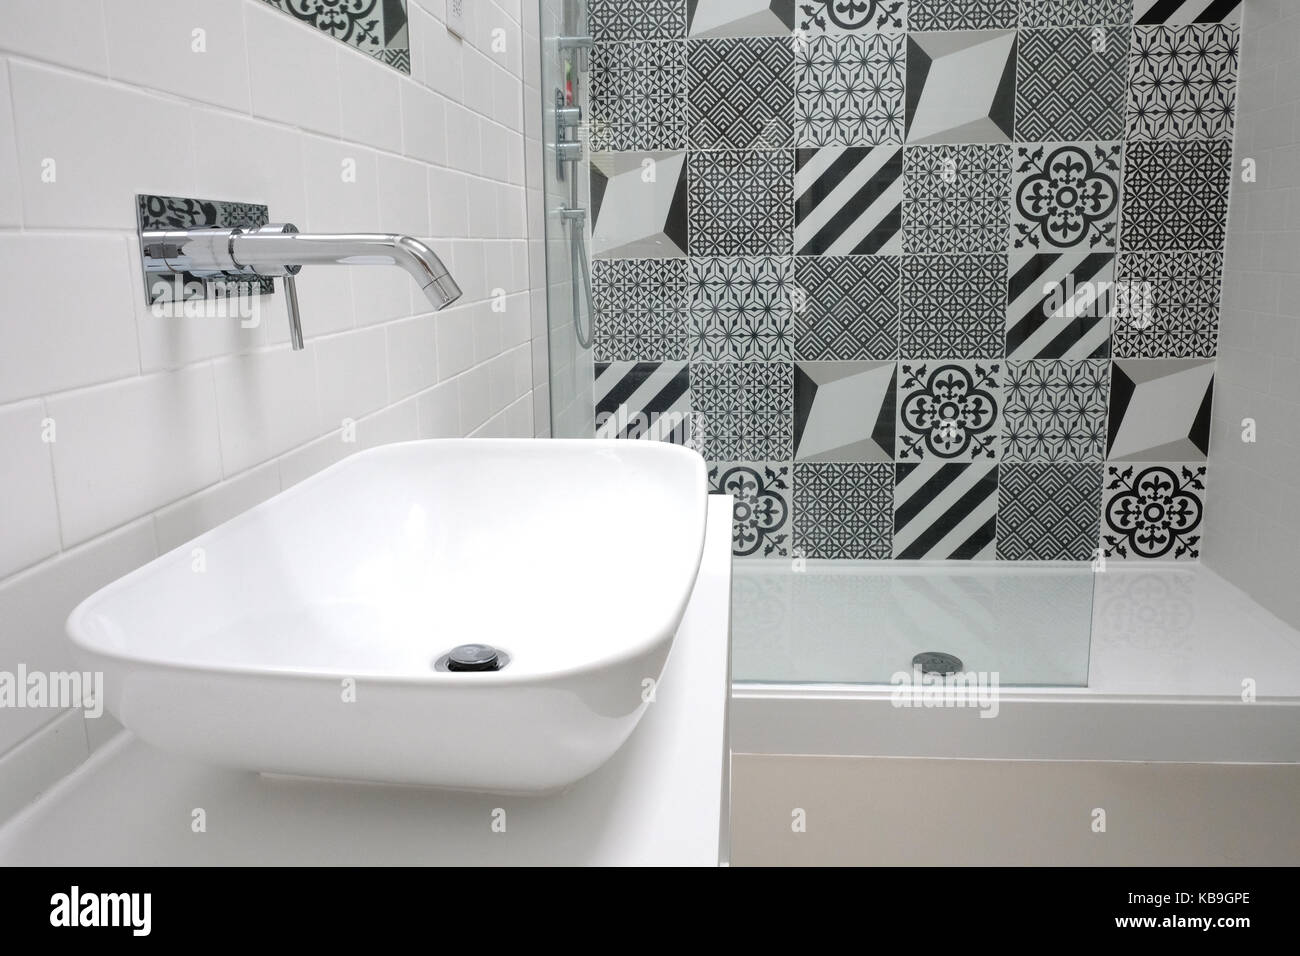 Scandi style white bathroom with monochrome patchwork tiles Stock ...